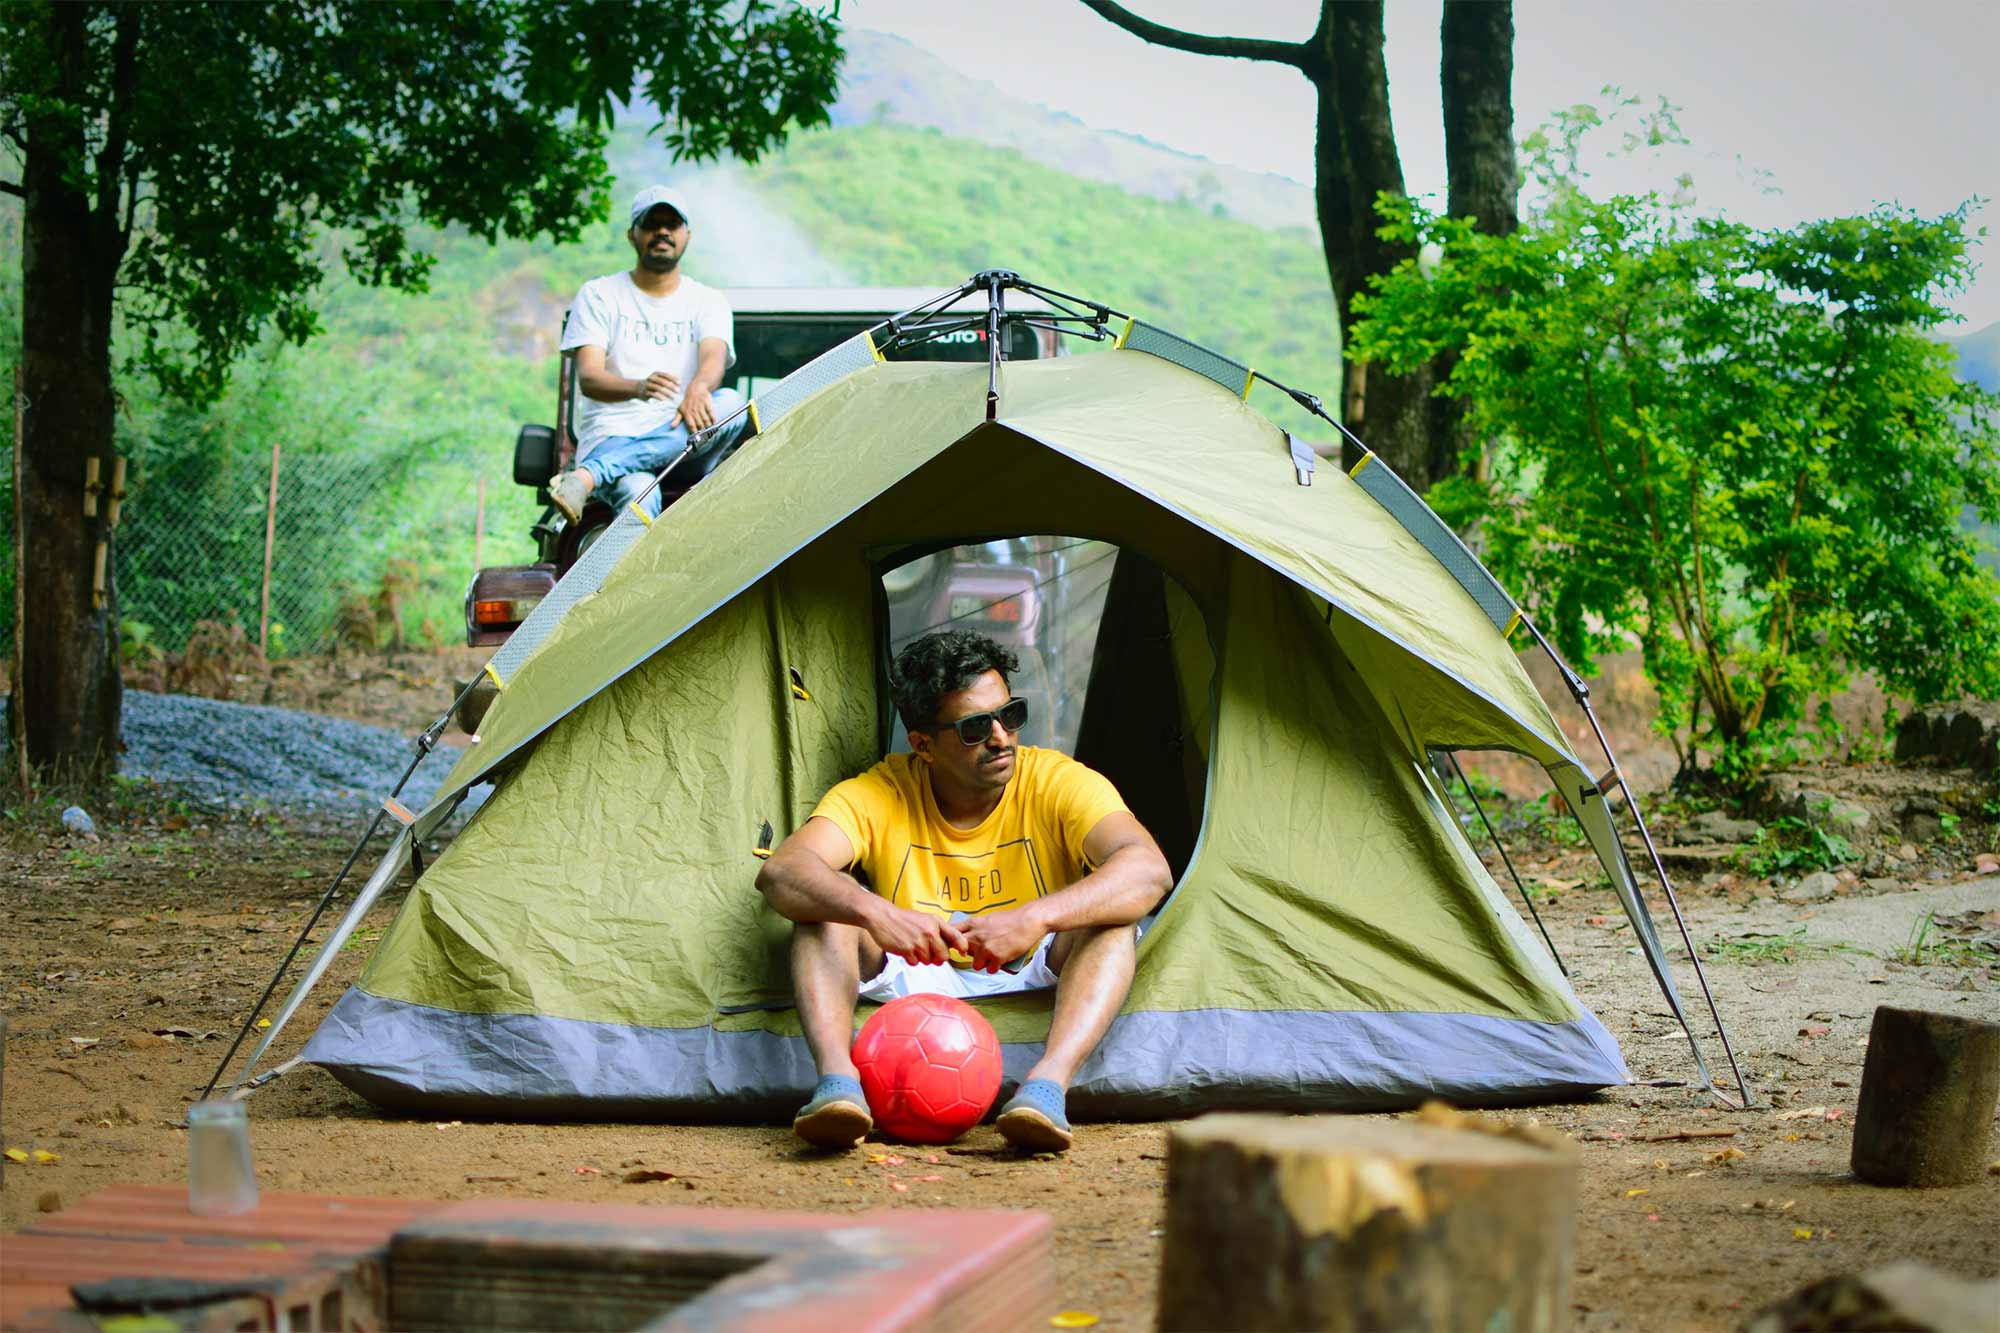 Two guys hanging out at a campsite by a tent